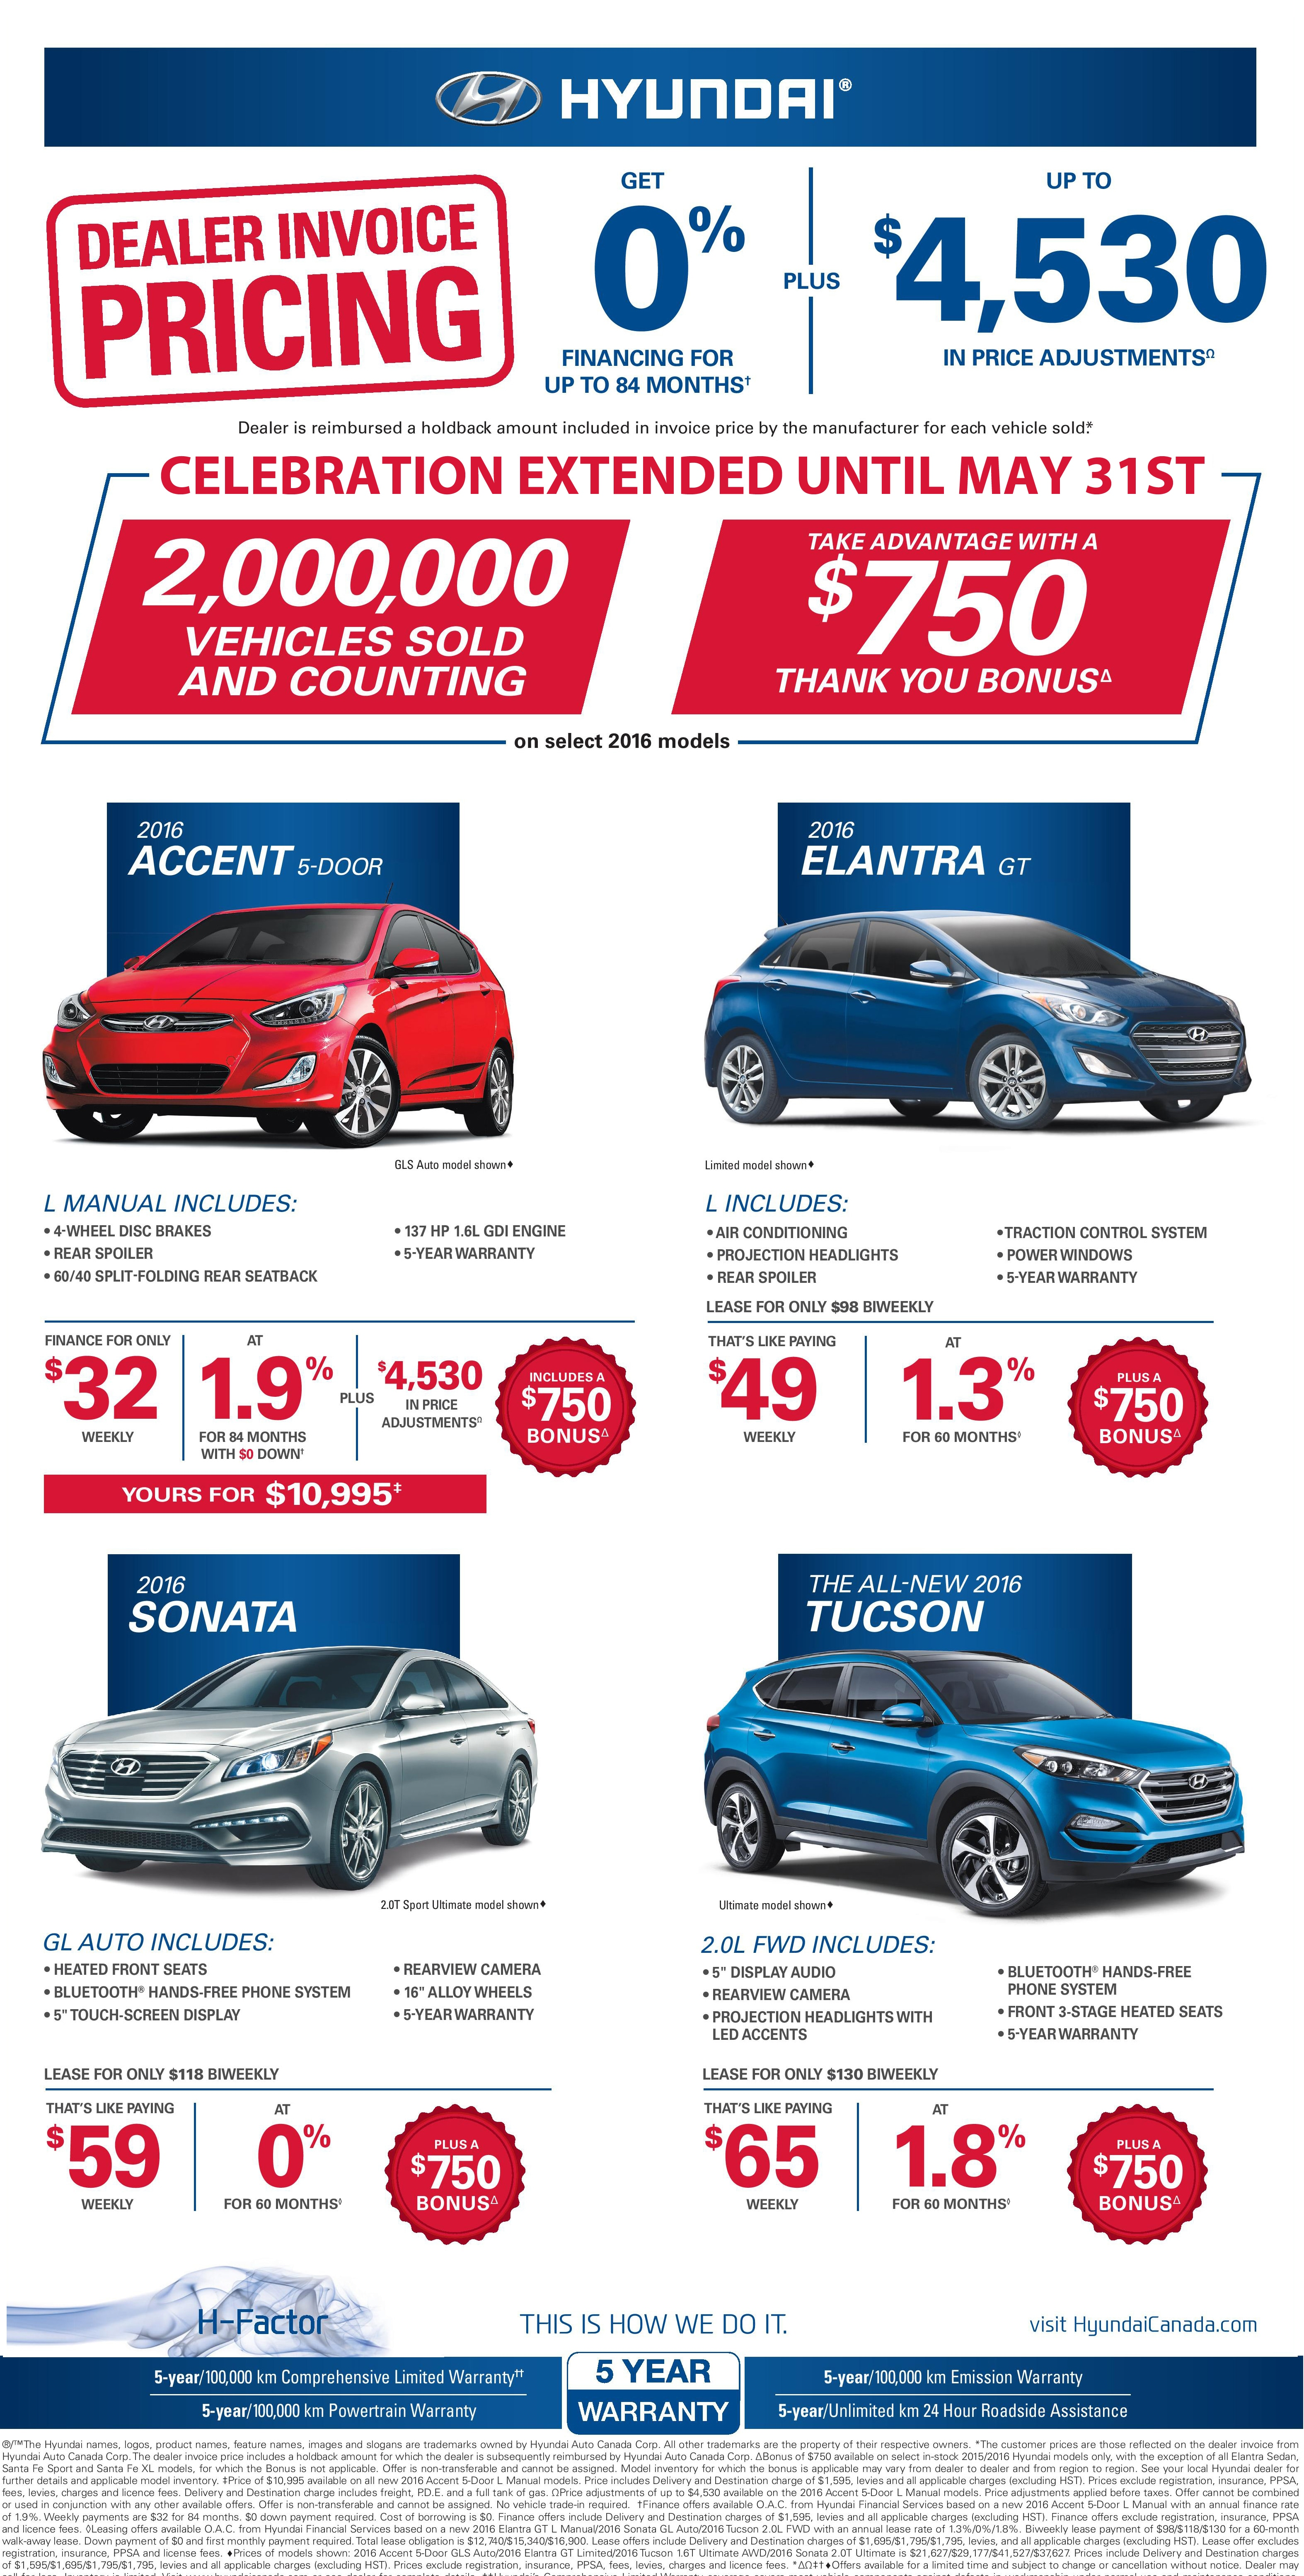 Agincourt Hyundai Dealer Invoice Pricing Event New Used Cars For - Do car dealers have to show you the invoice